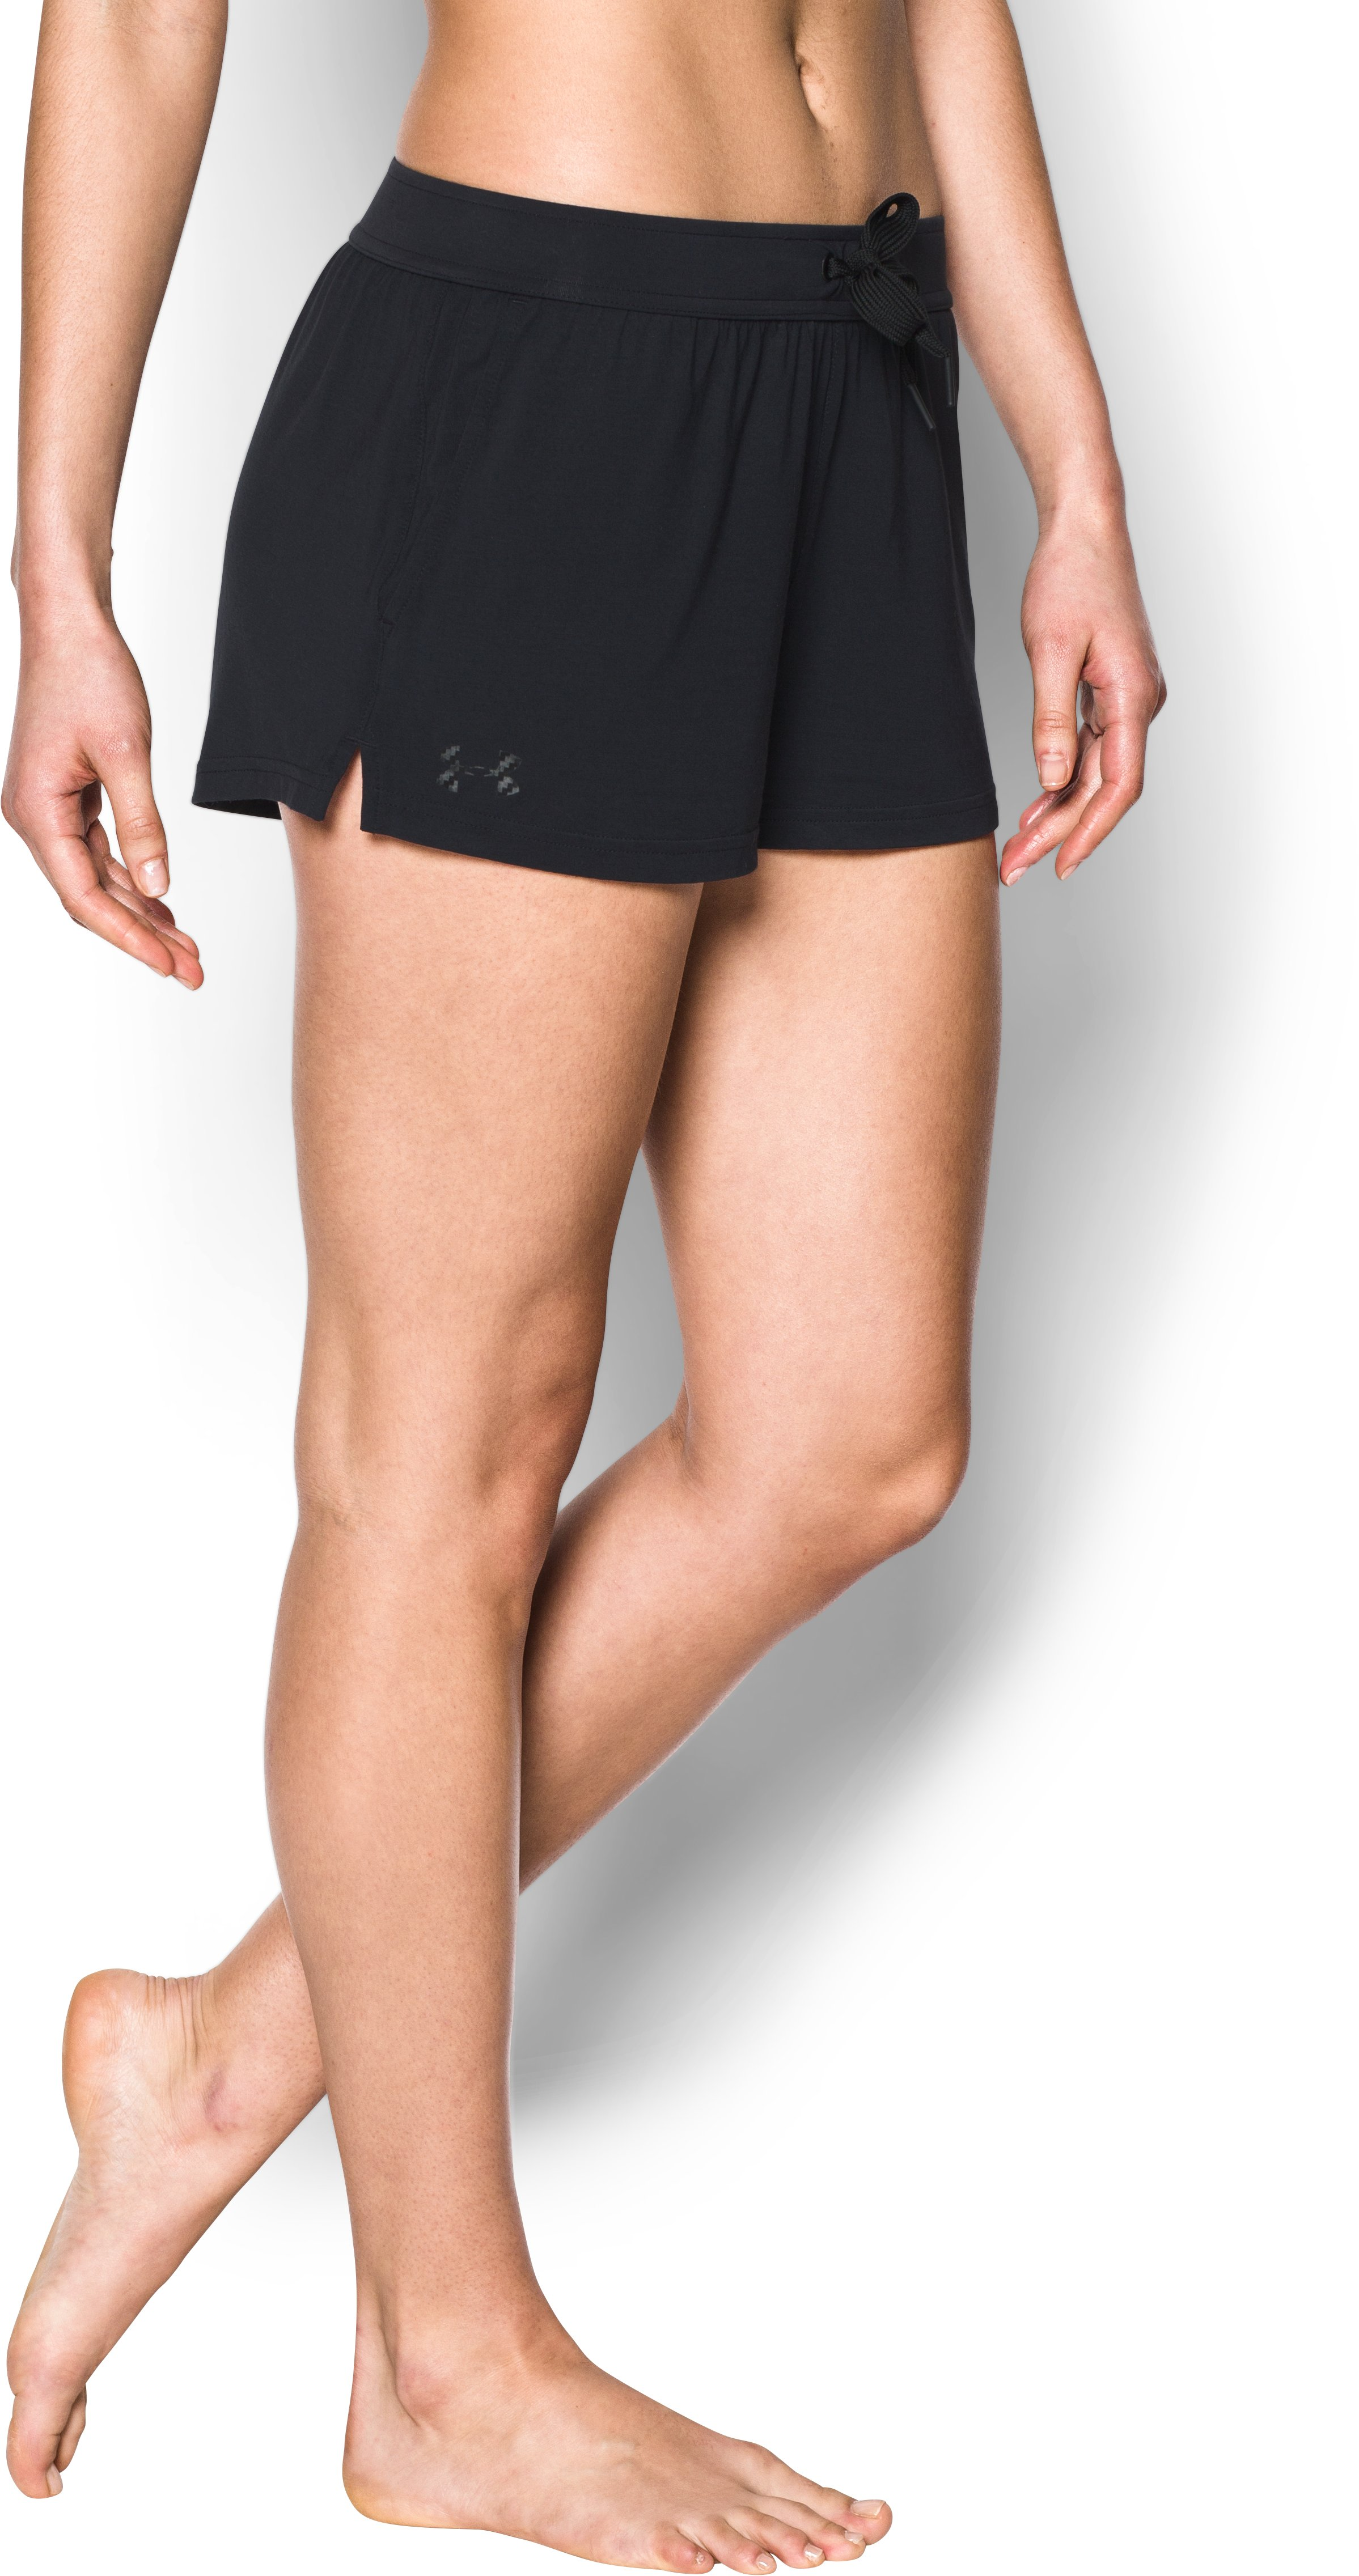 Women's Athlete Recovery Ultra Comfort Sleepwear Shorts, Black